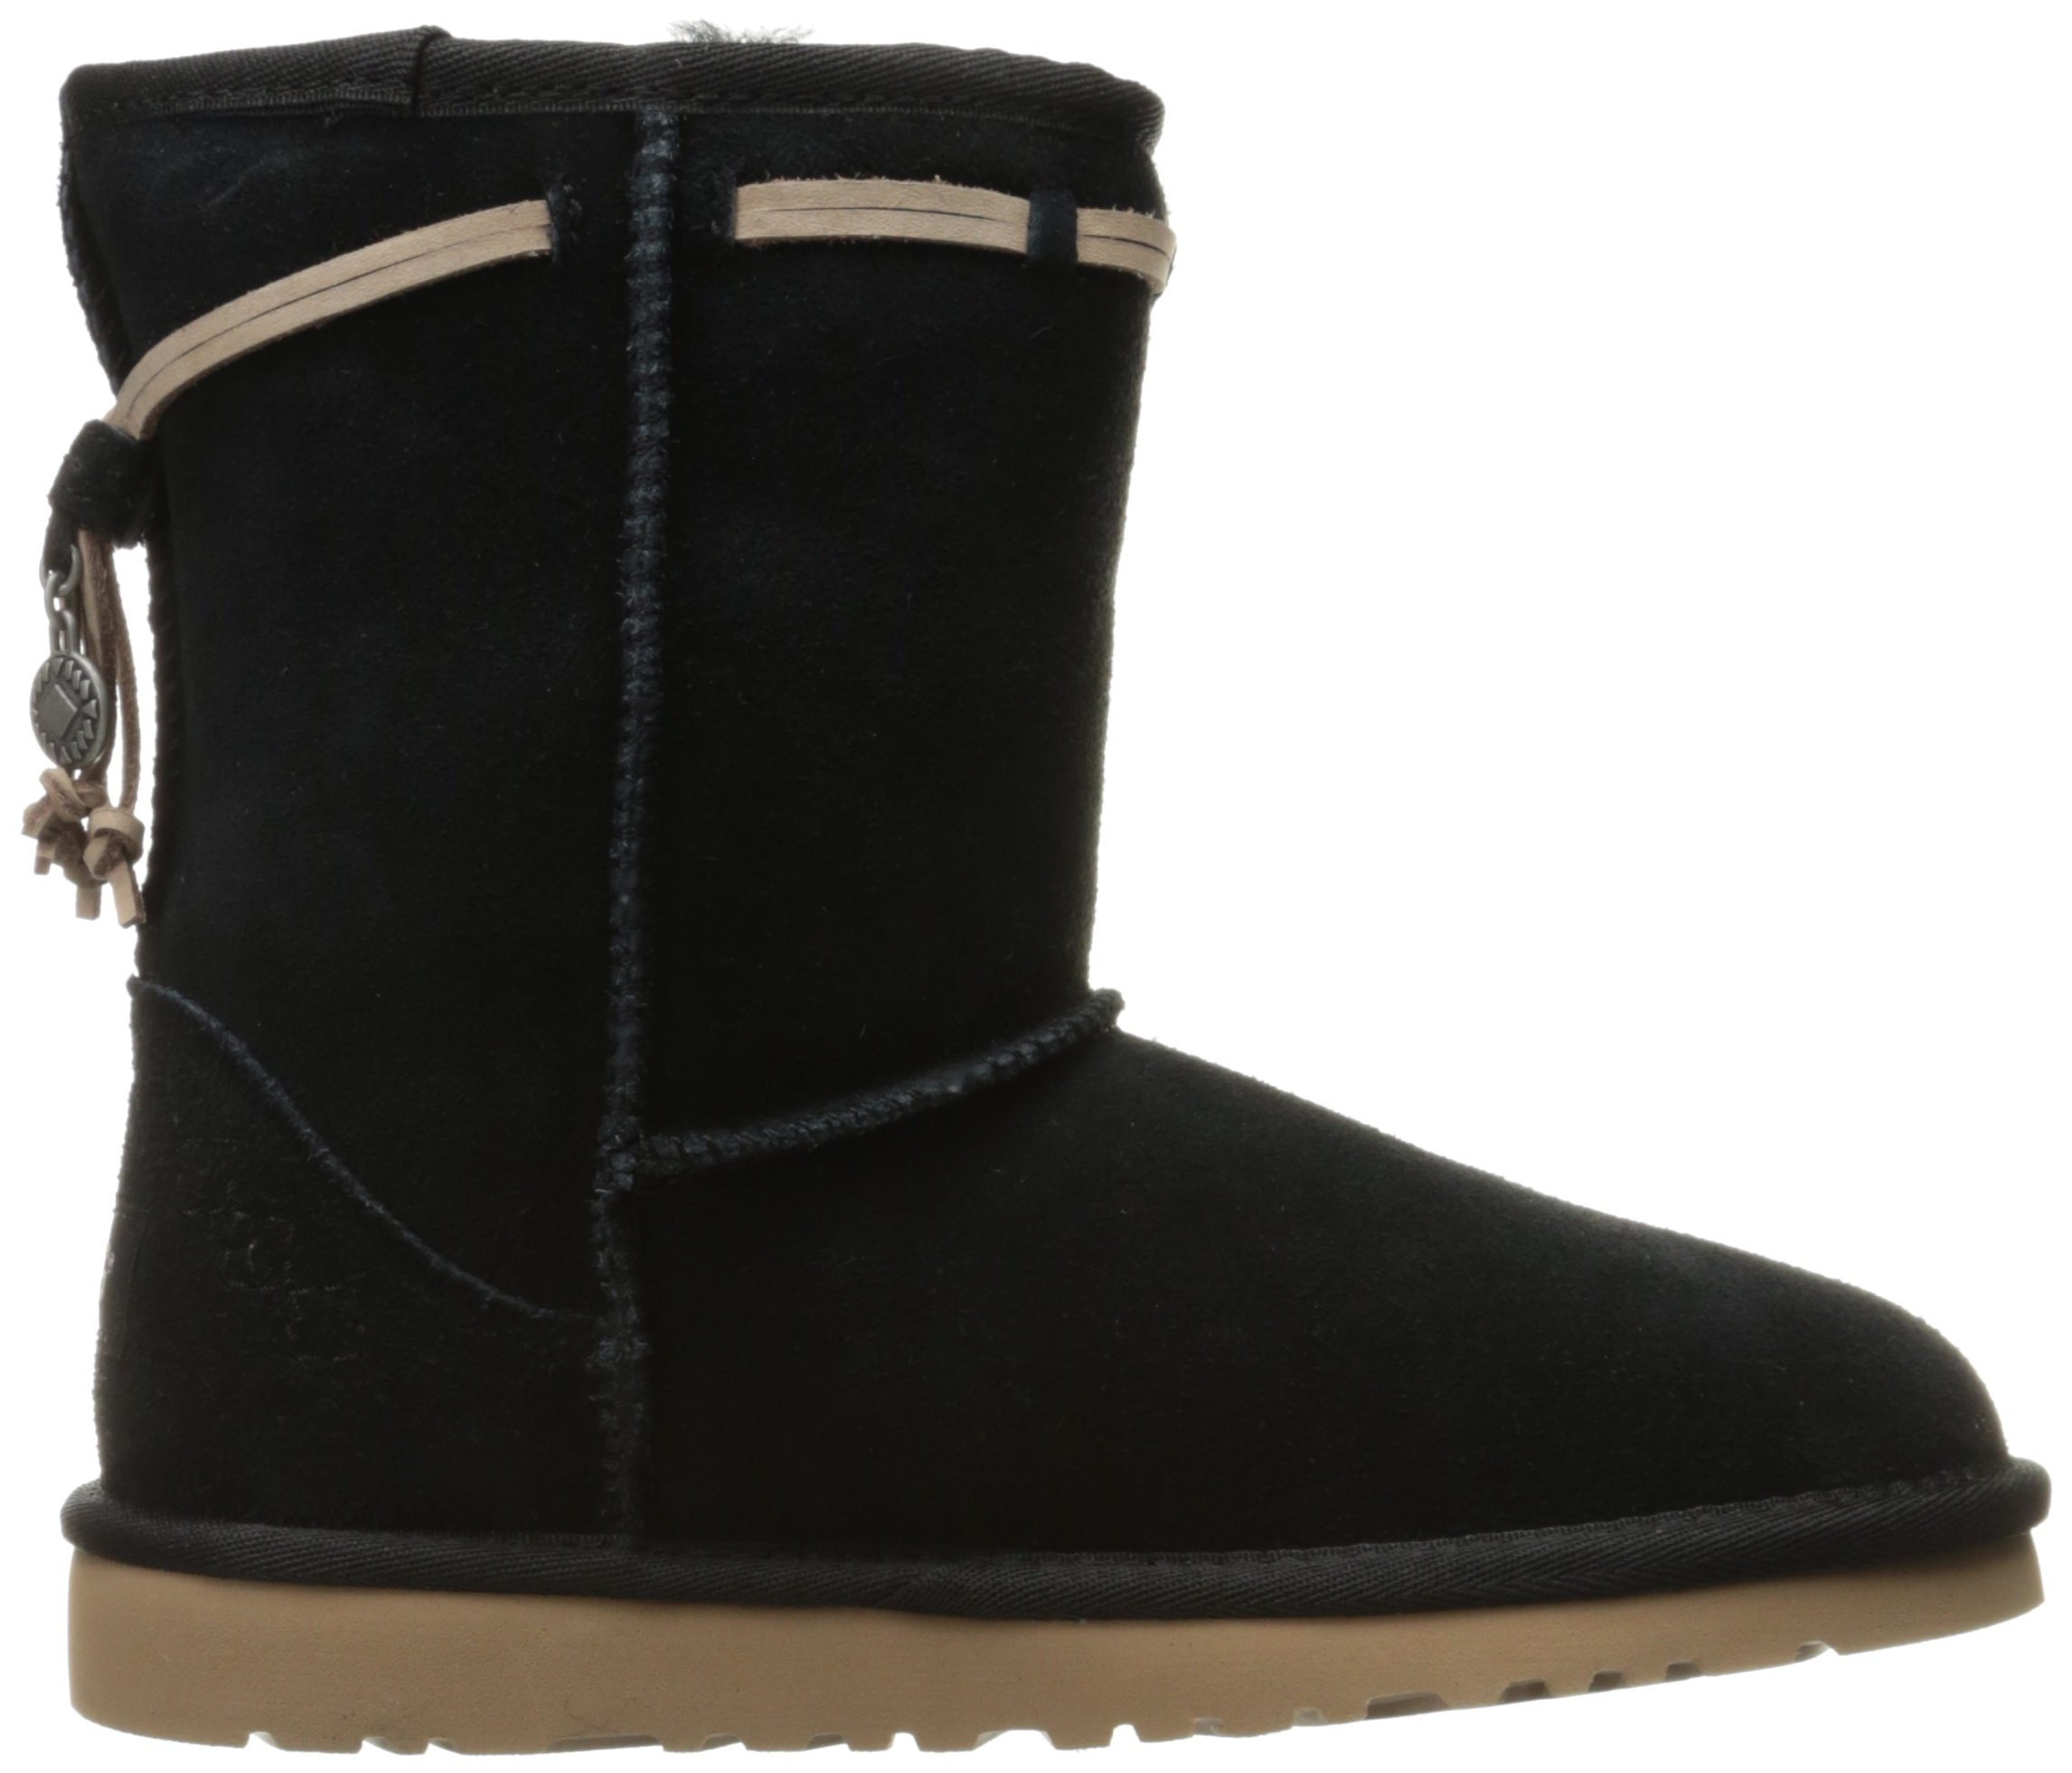 UGG Kids' K Classic Short Carranza Pull-on Boot, Black, 2 M US Little Kid by UGG (Image #7)